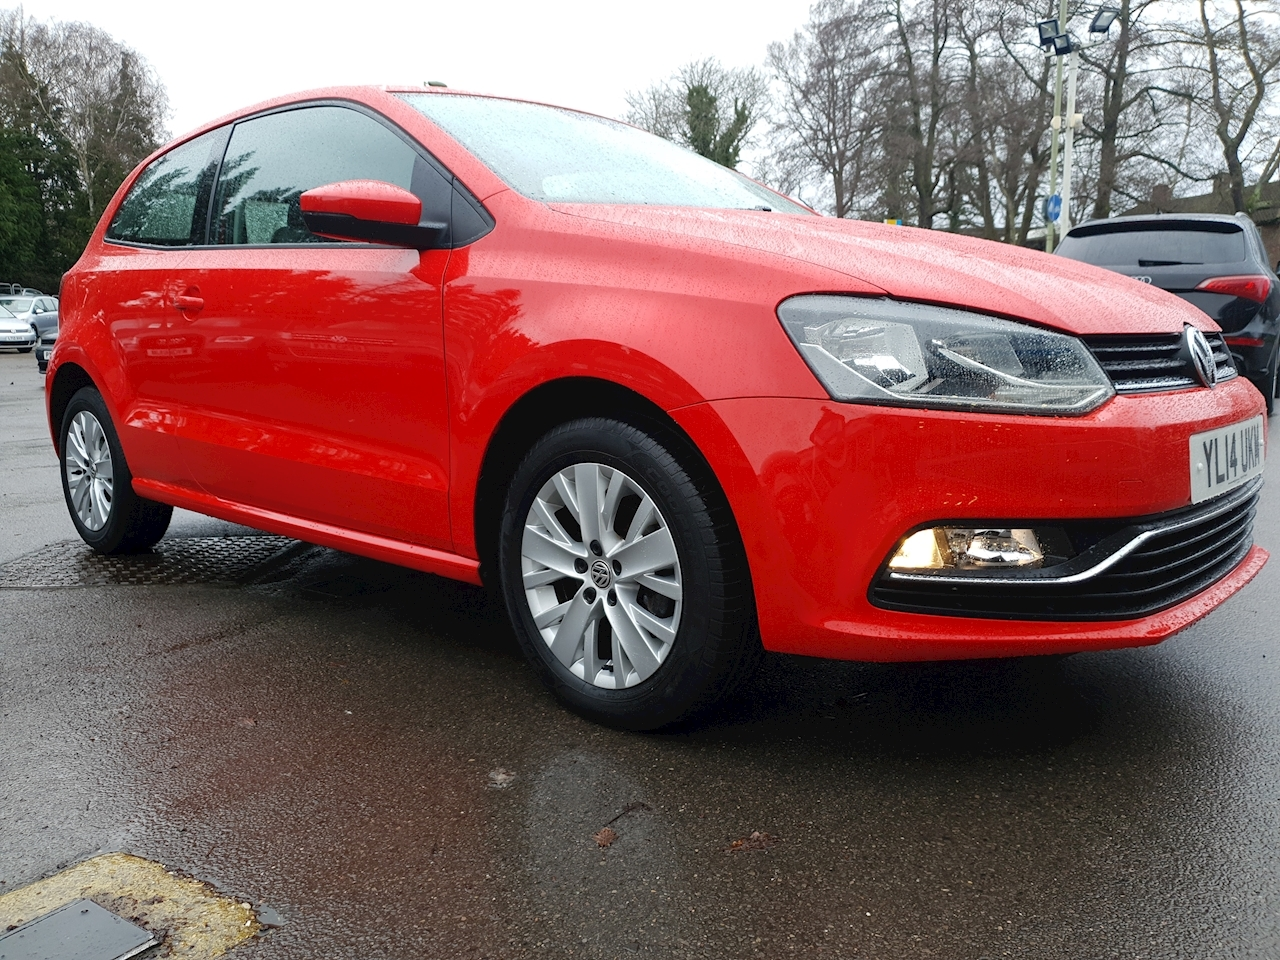 Volkswagen 1.0 BlueMotion Tech SE Hatchback 3dr Petrol Manual (s/s) (106 g/km, 59 bhp)